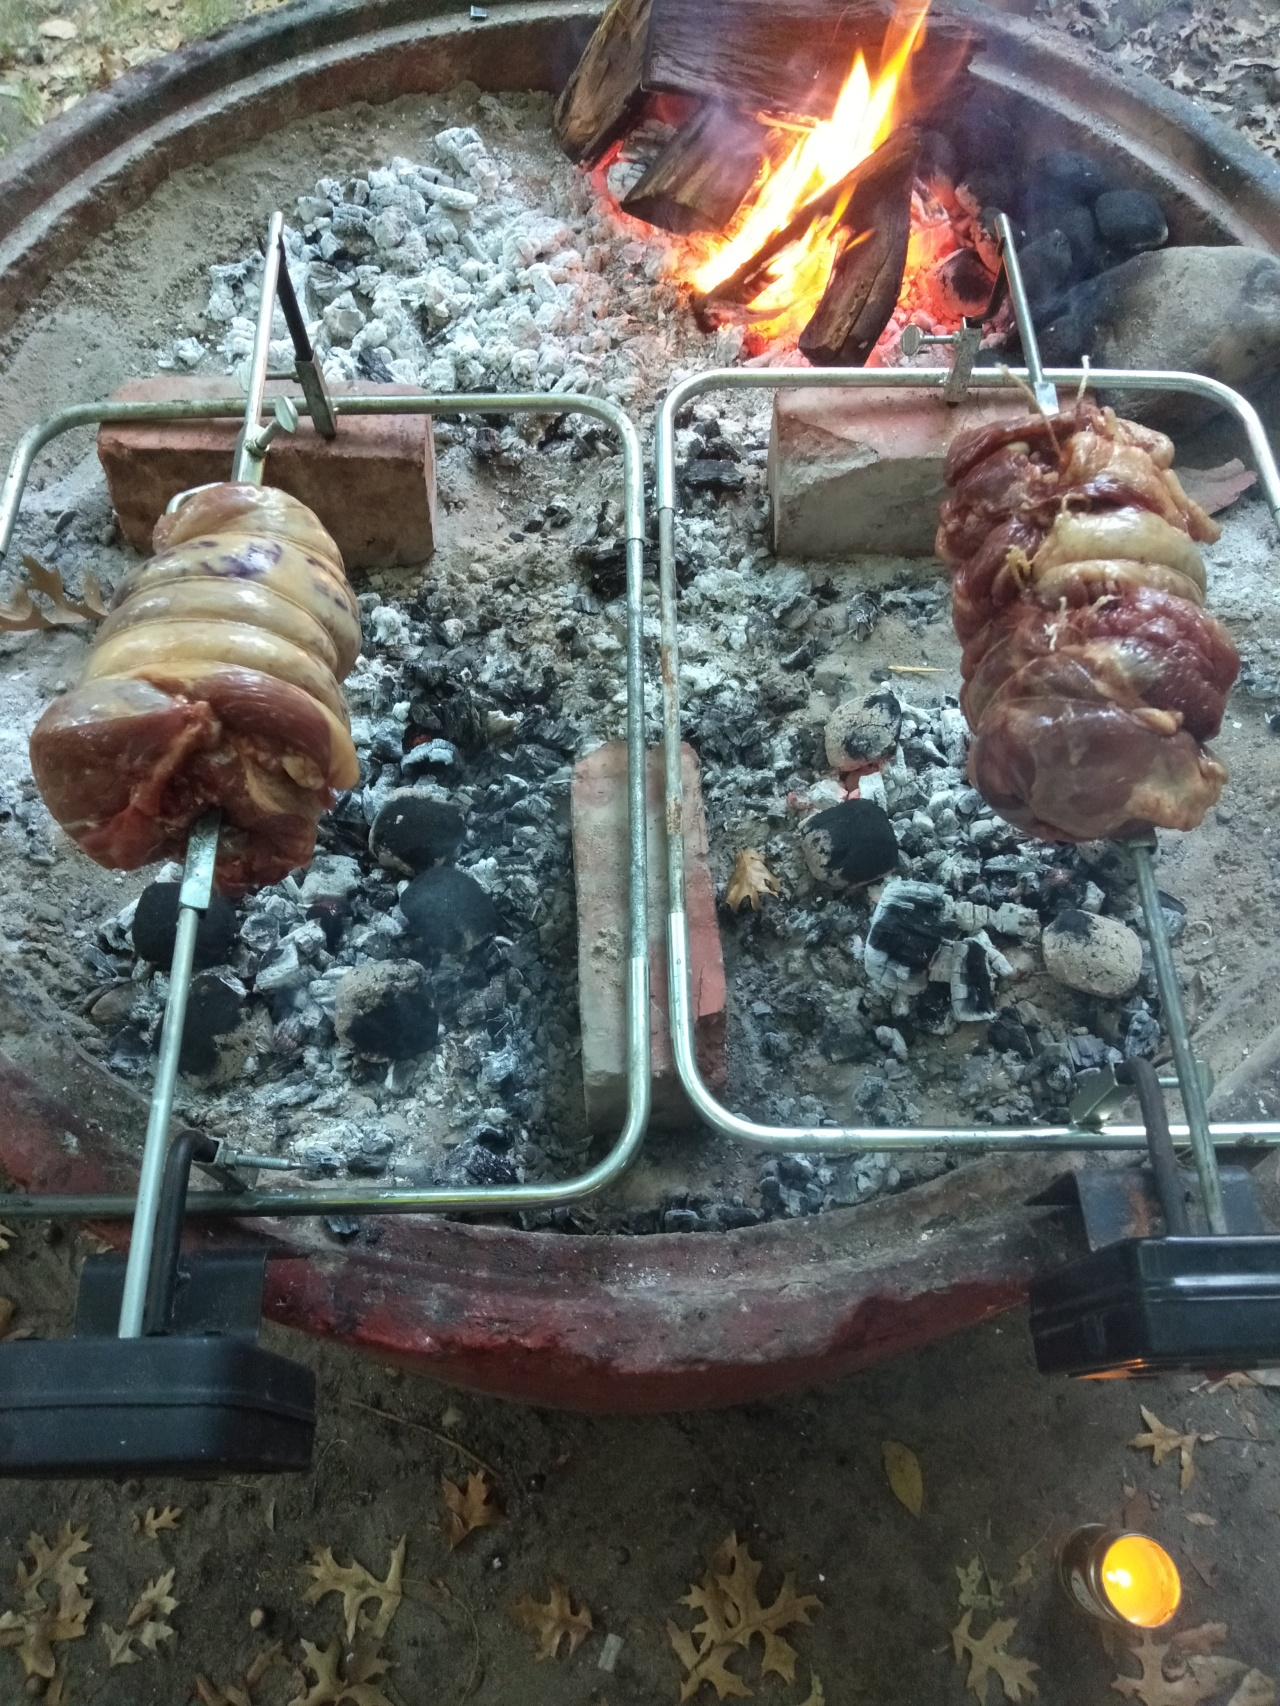 # 'BRAAI' WEEKEND Nr 4 (while camping at Slanghoek Mountain Resort)